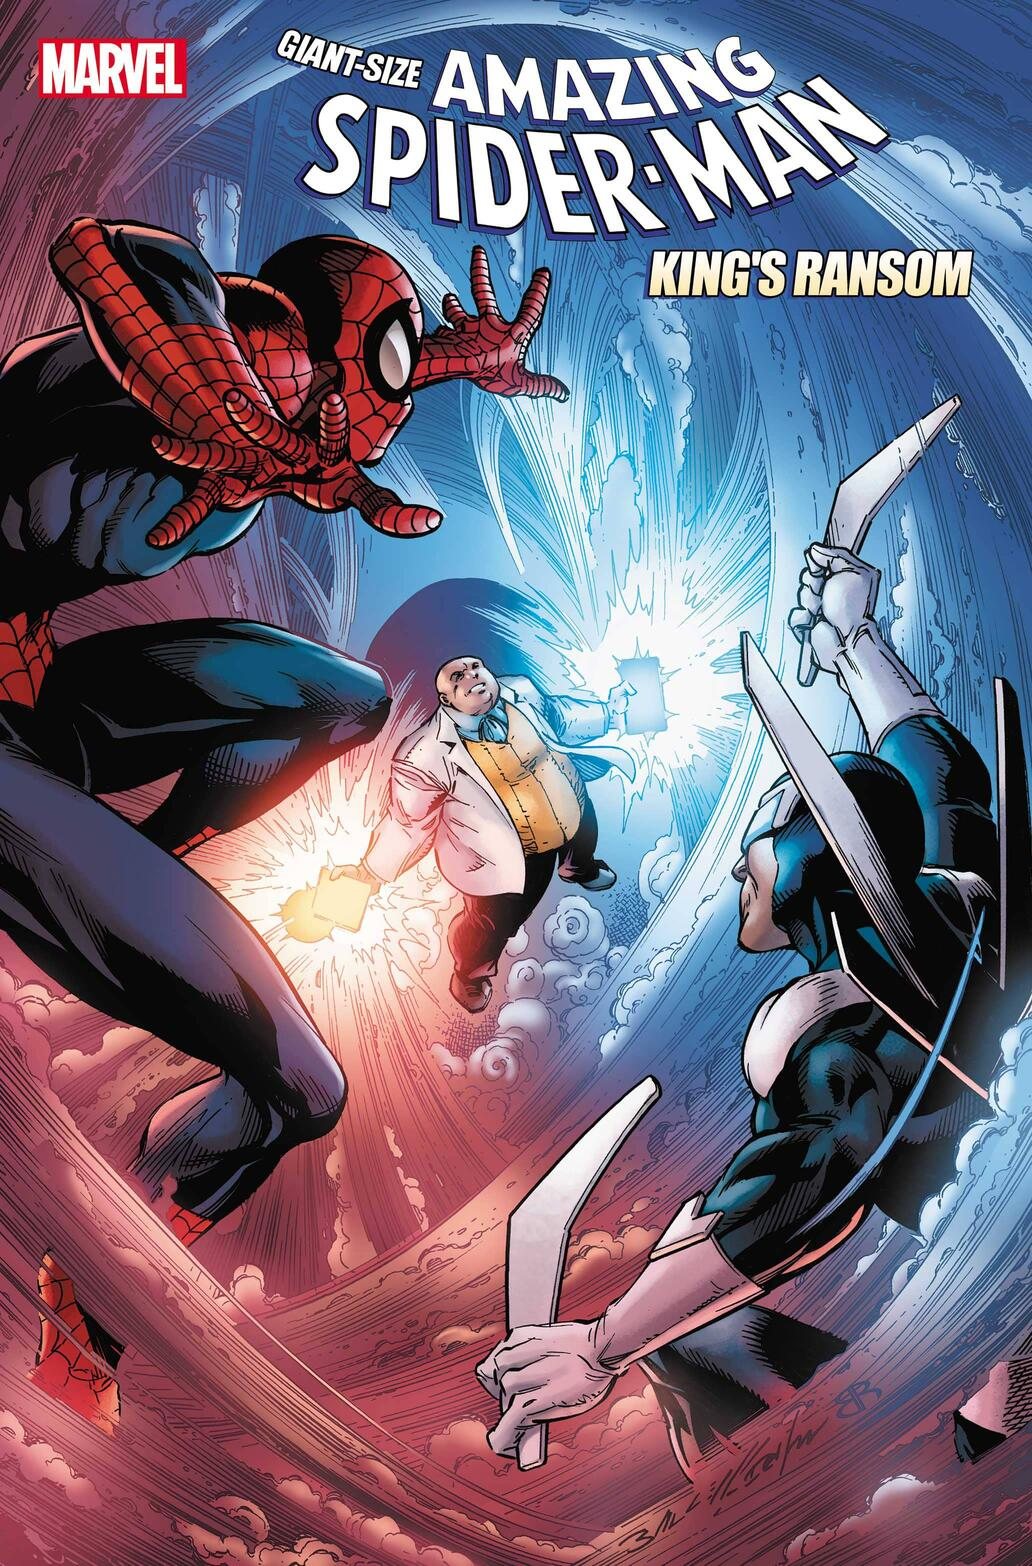 Giant-Size Spider-Man King's Ransom